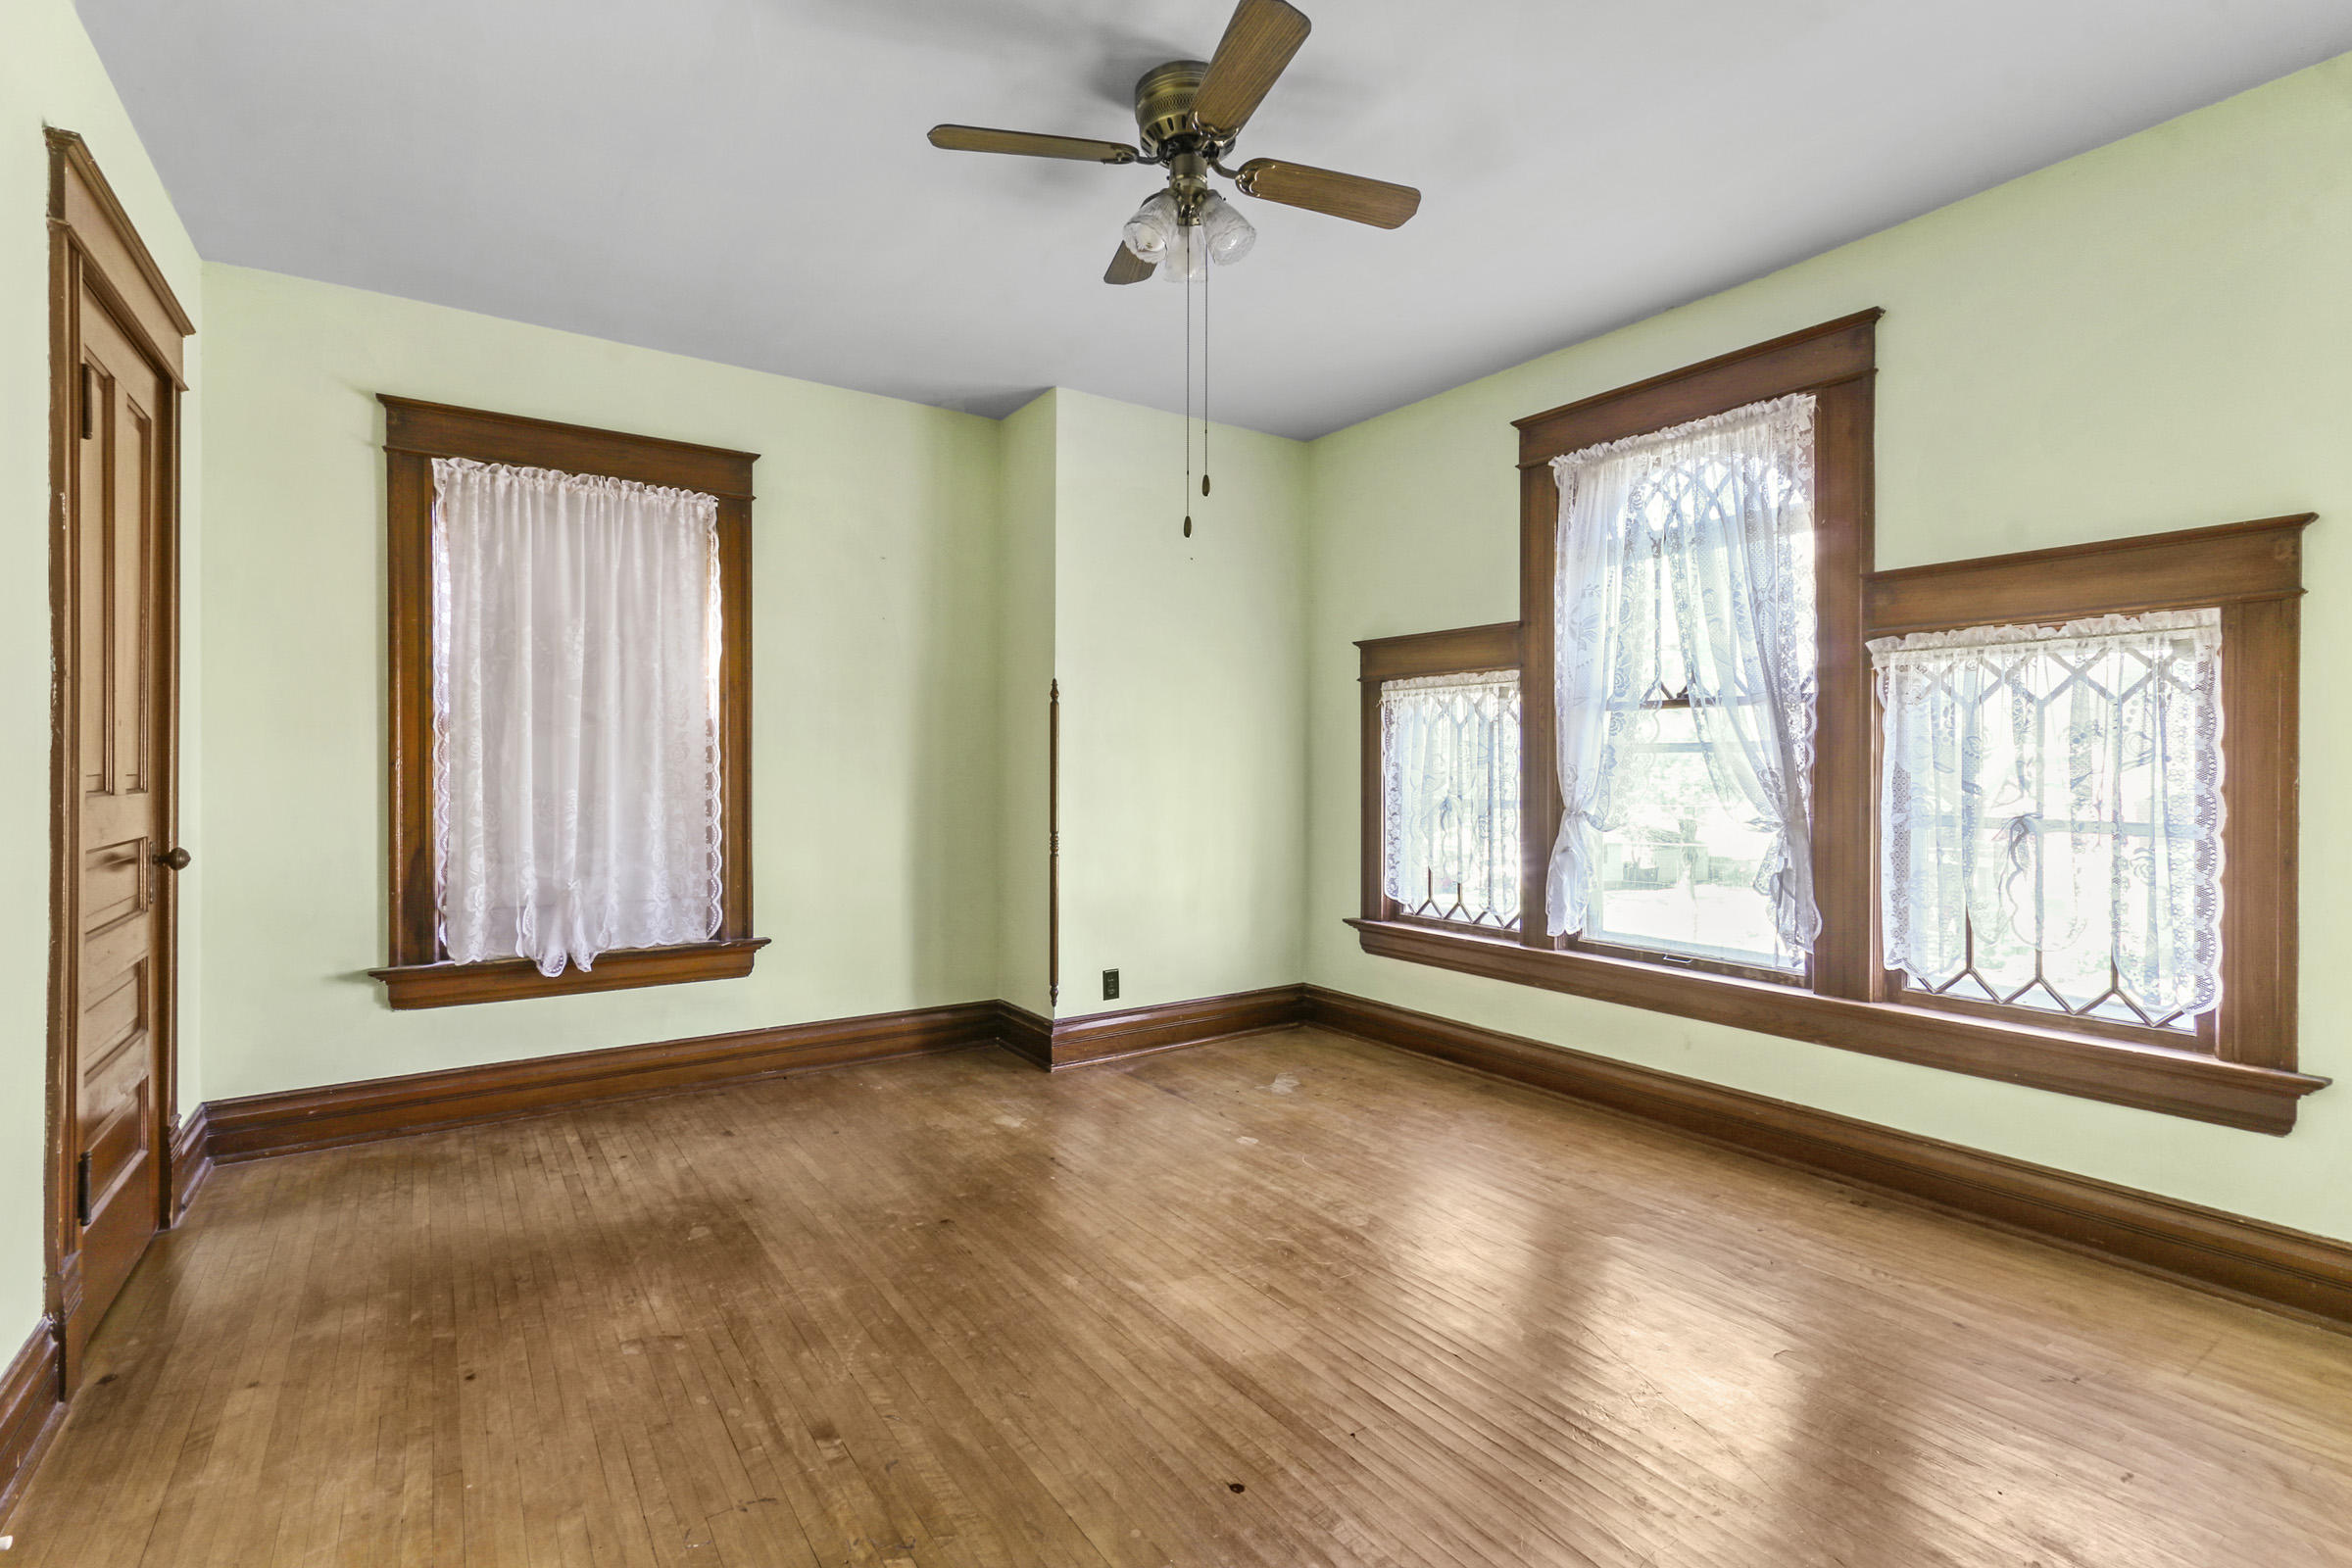 108 Grace St, Sharon, Wisconsin 53585, 4 Bedrooms Bedrooms, 8 Rooms Rooms,1 BathroomBathrooms,Single-family,For Sale,Grace St,1714802